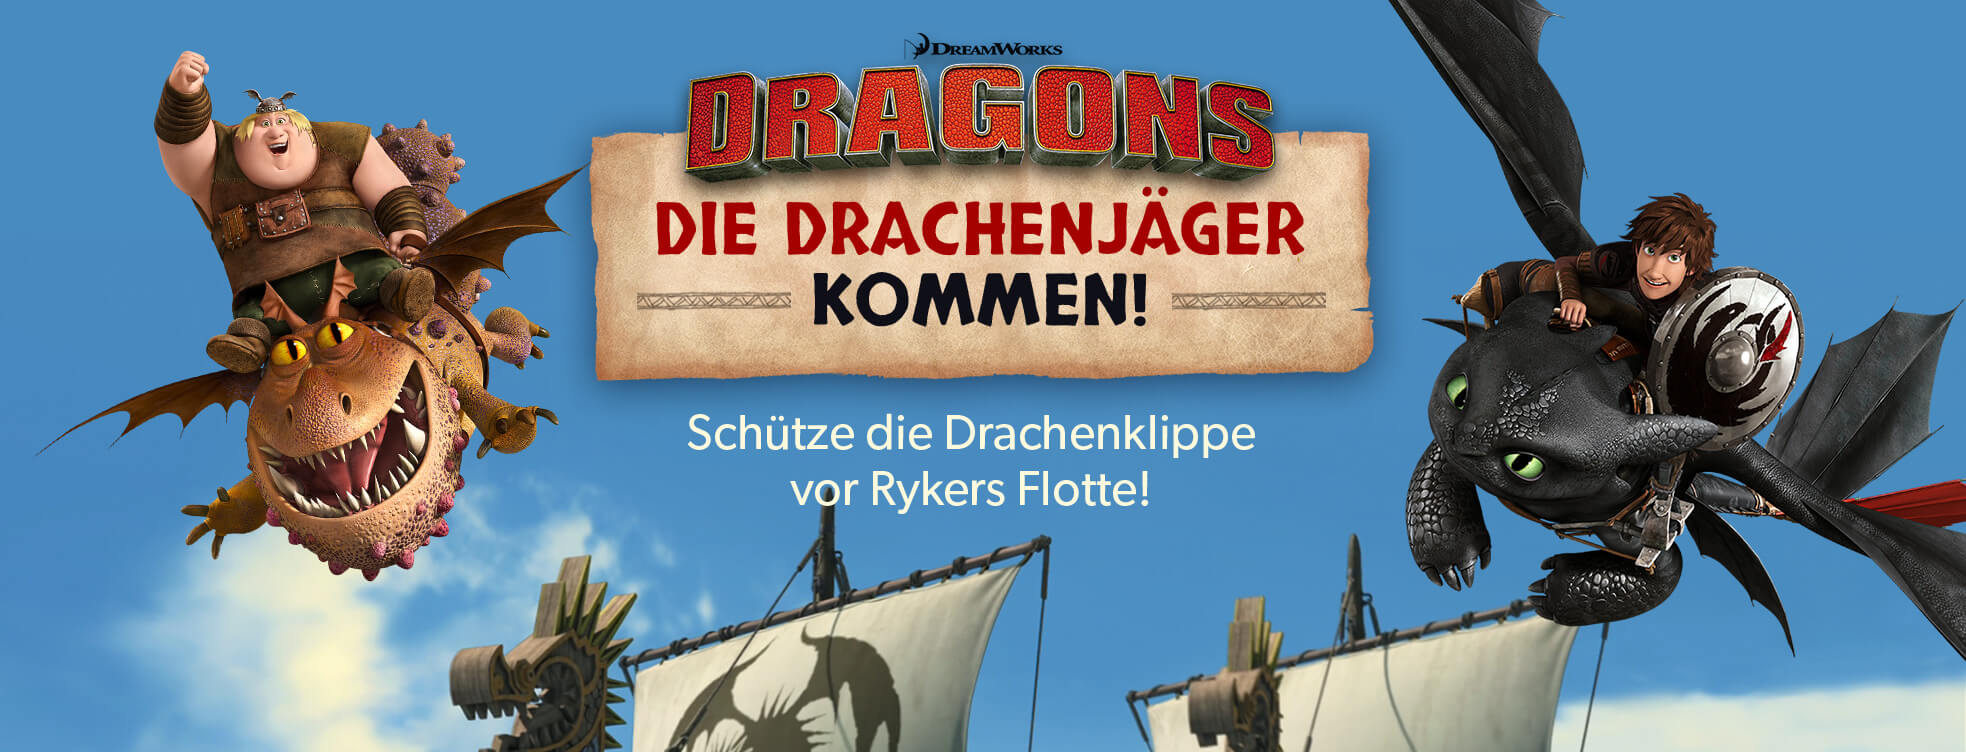 Dragons Super Rtl